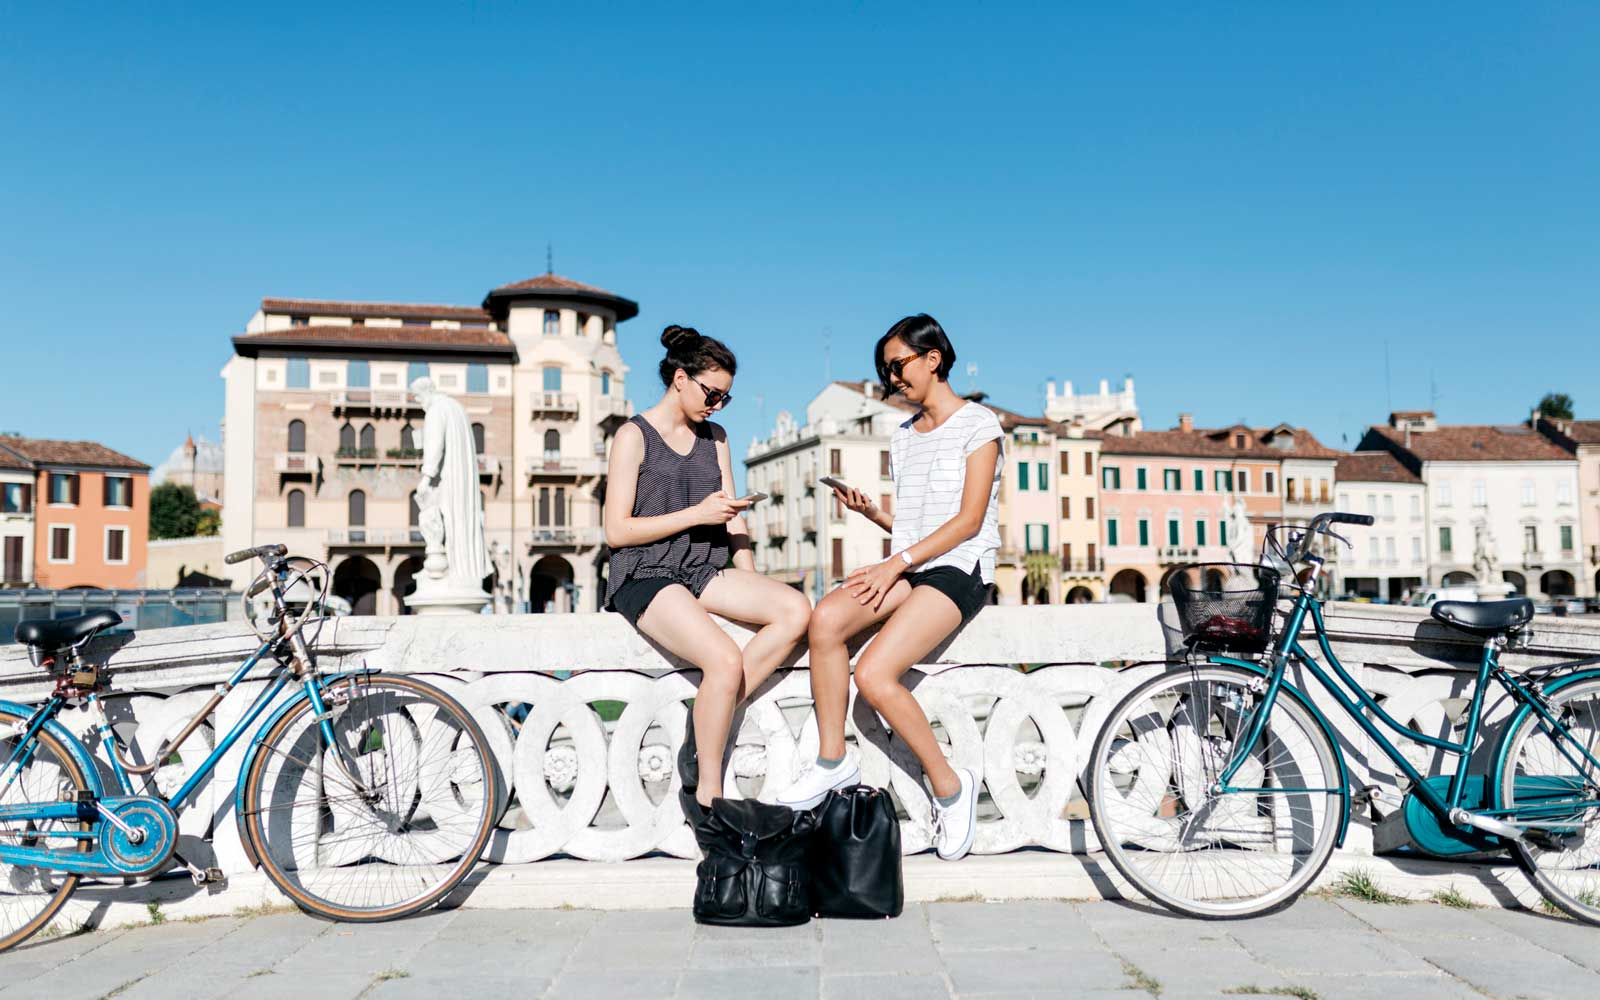 American tourists in Italy